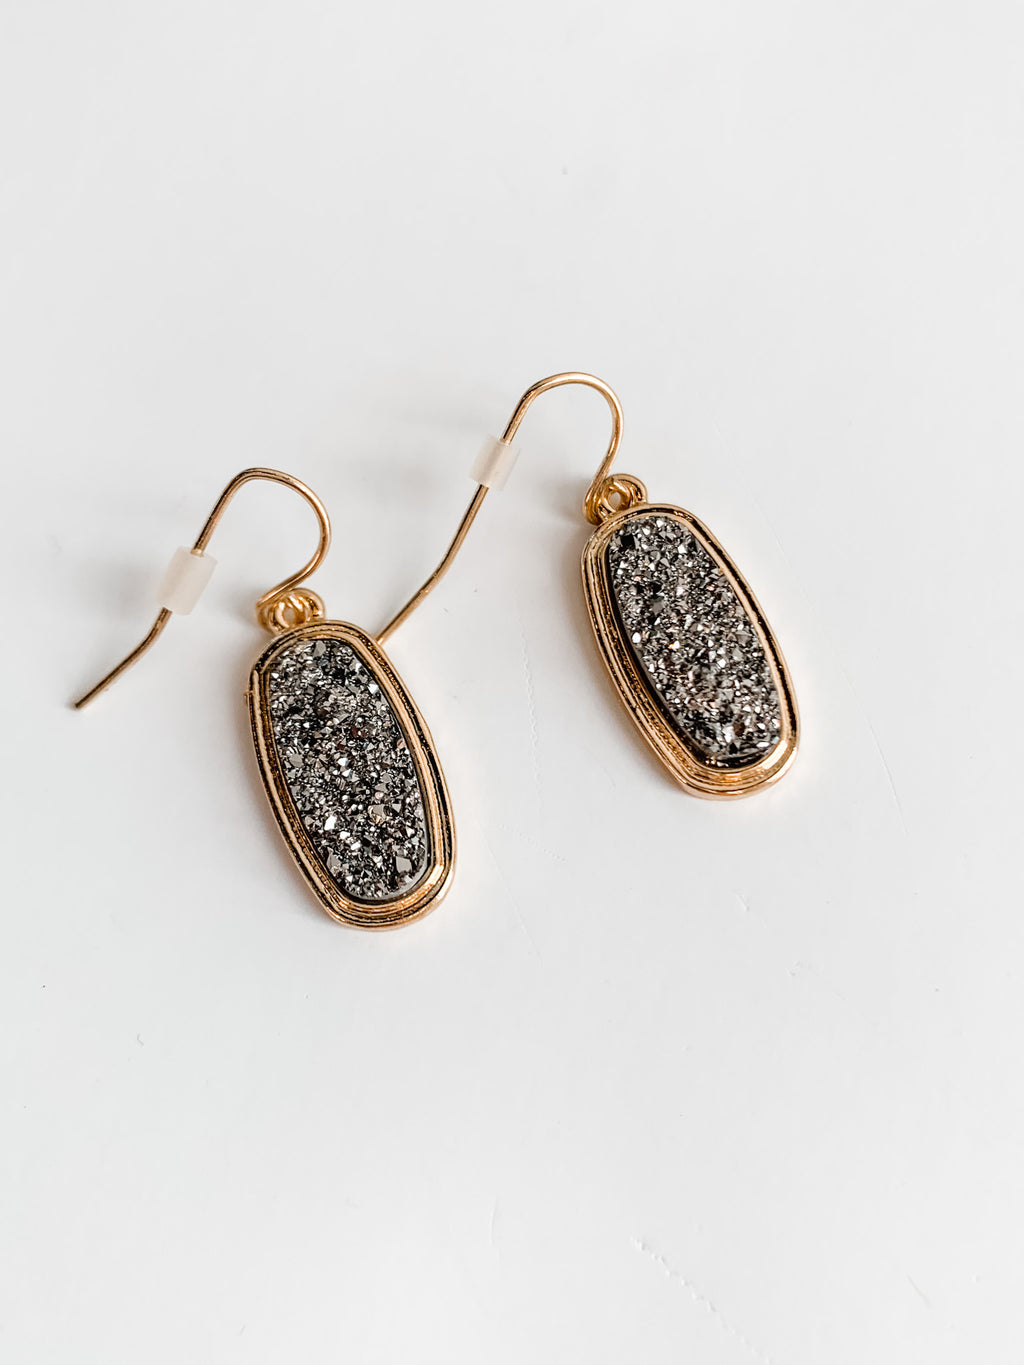 GOLD/SILVER DRUZY EARRINGS